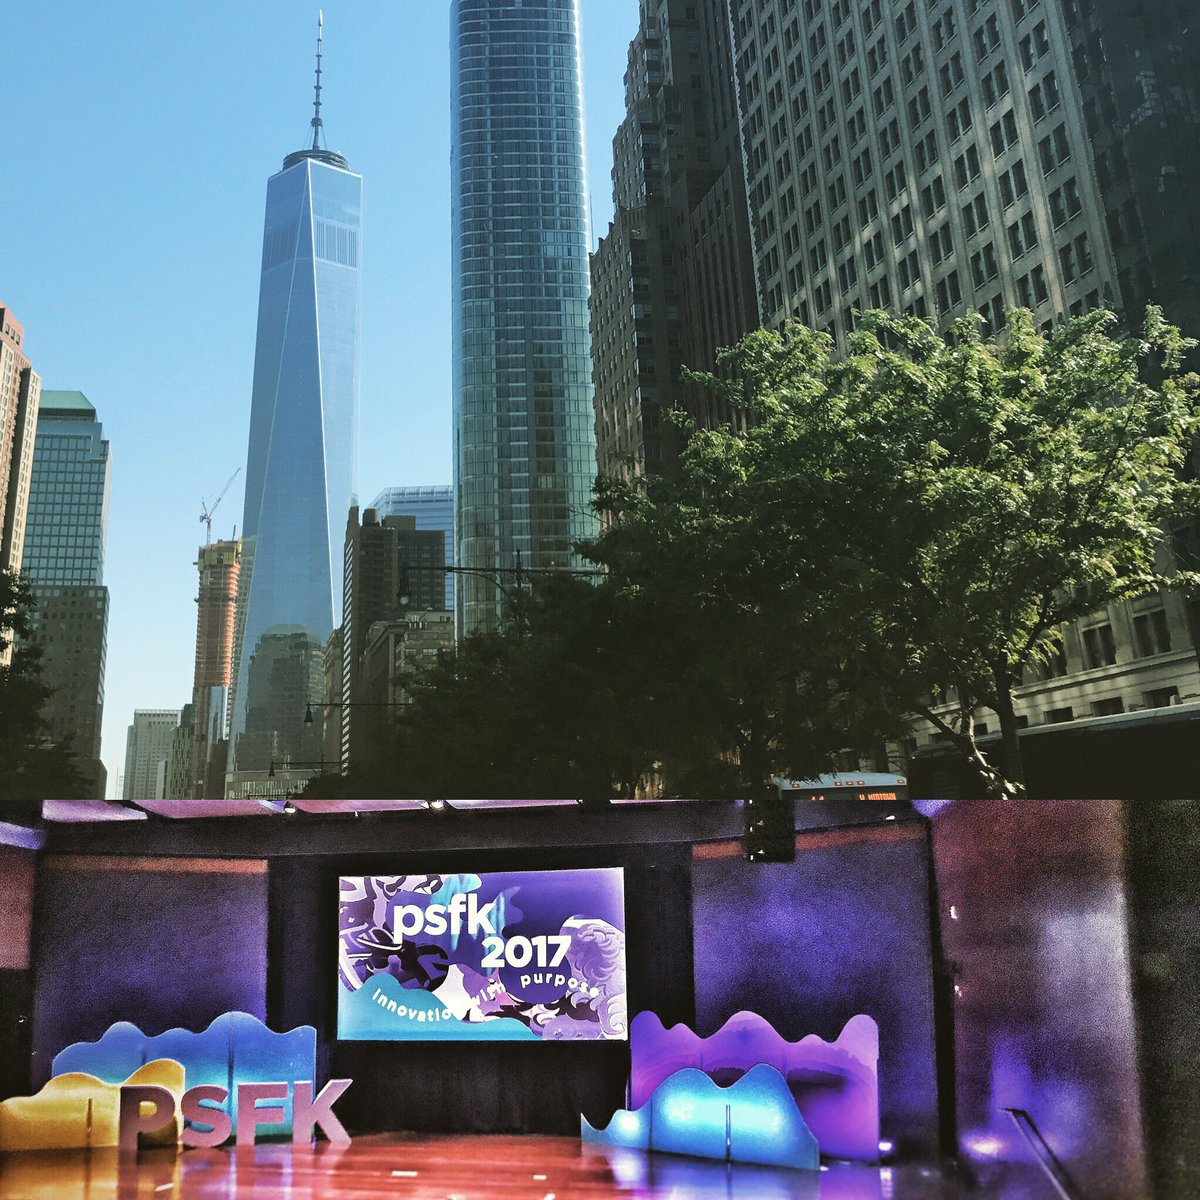 .@PSFK conference today -- great pace and variety of insightful, purpose-driven thinking in the speakers. #psfk2017 <br>http://pic.twitter.com/F0auxoffrf